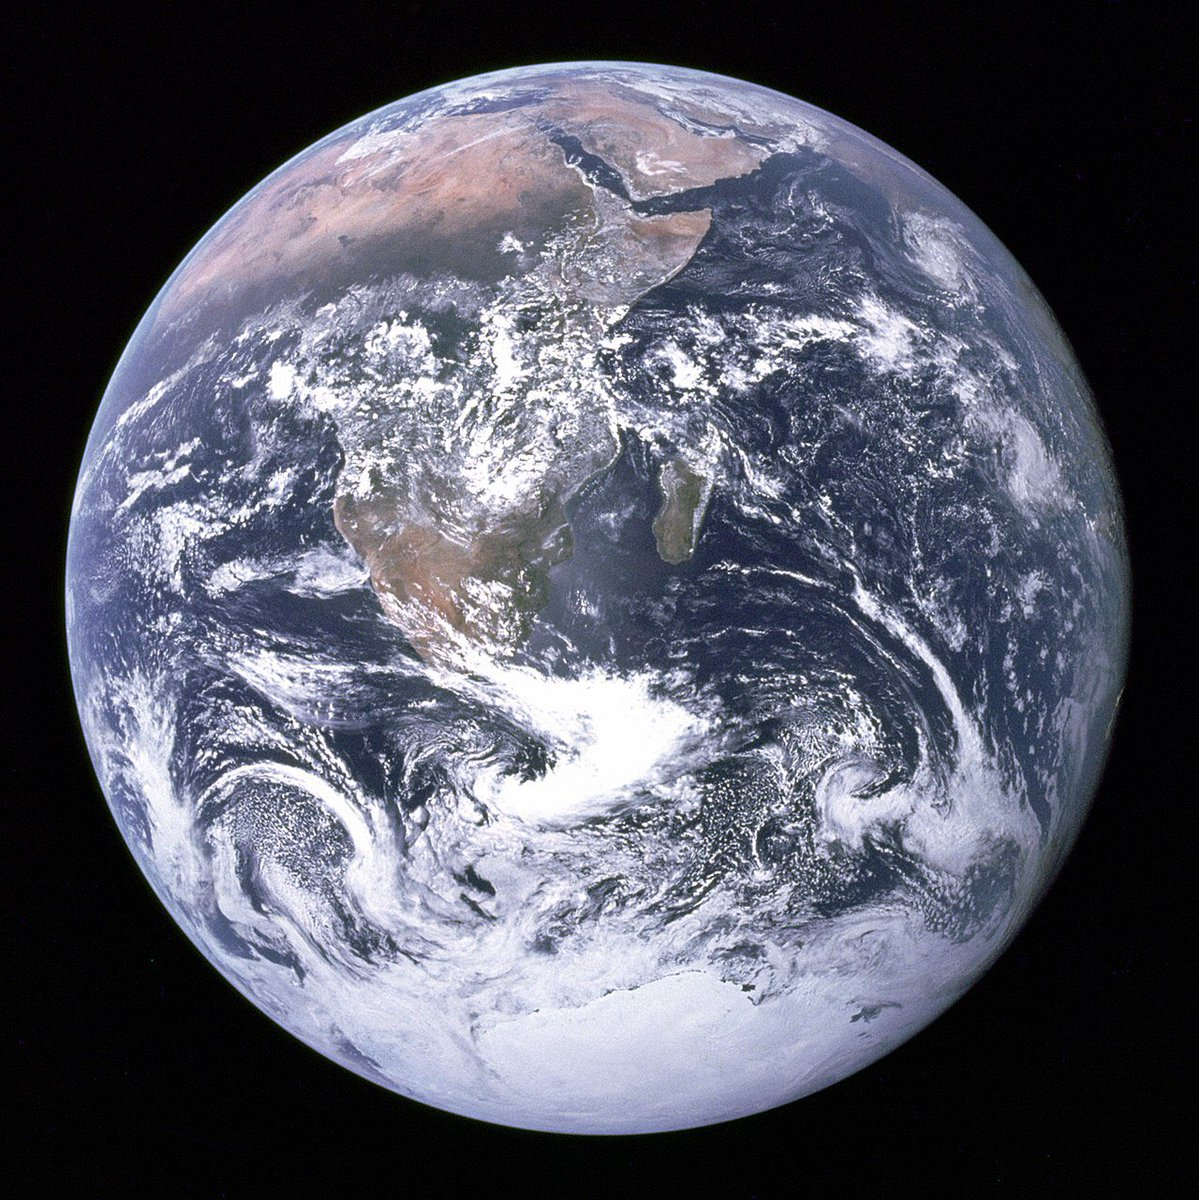 45 years ago today the crew of #Apollo17 took this photograph en route to the moon. #bluemarble